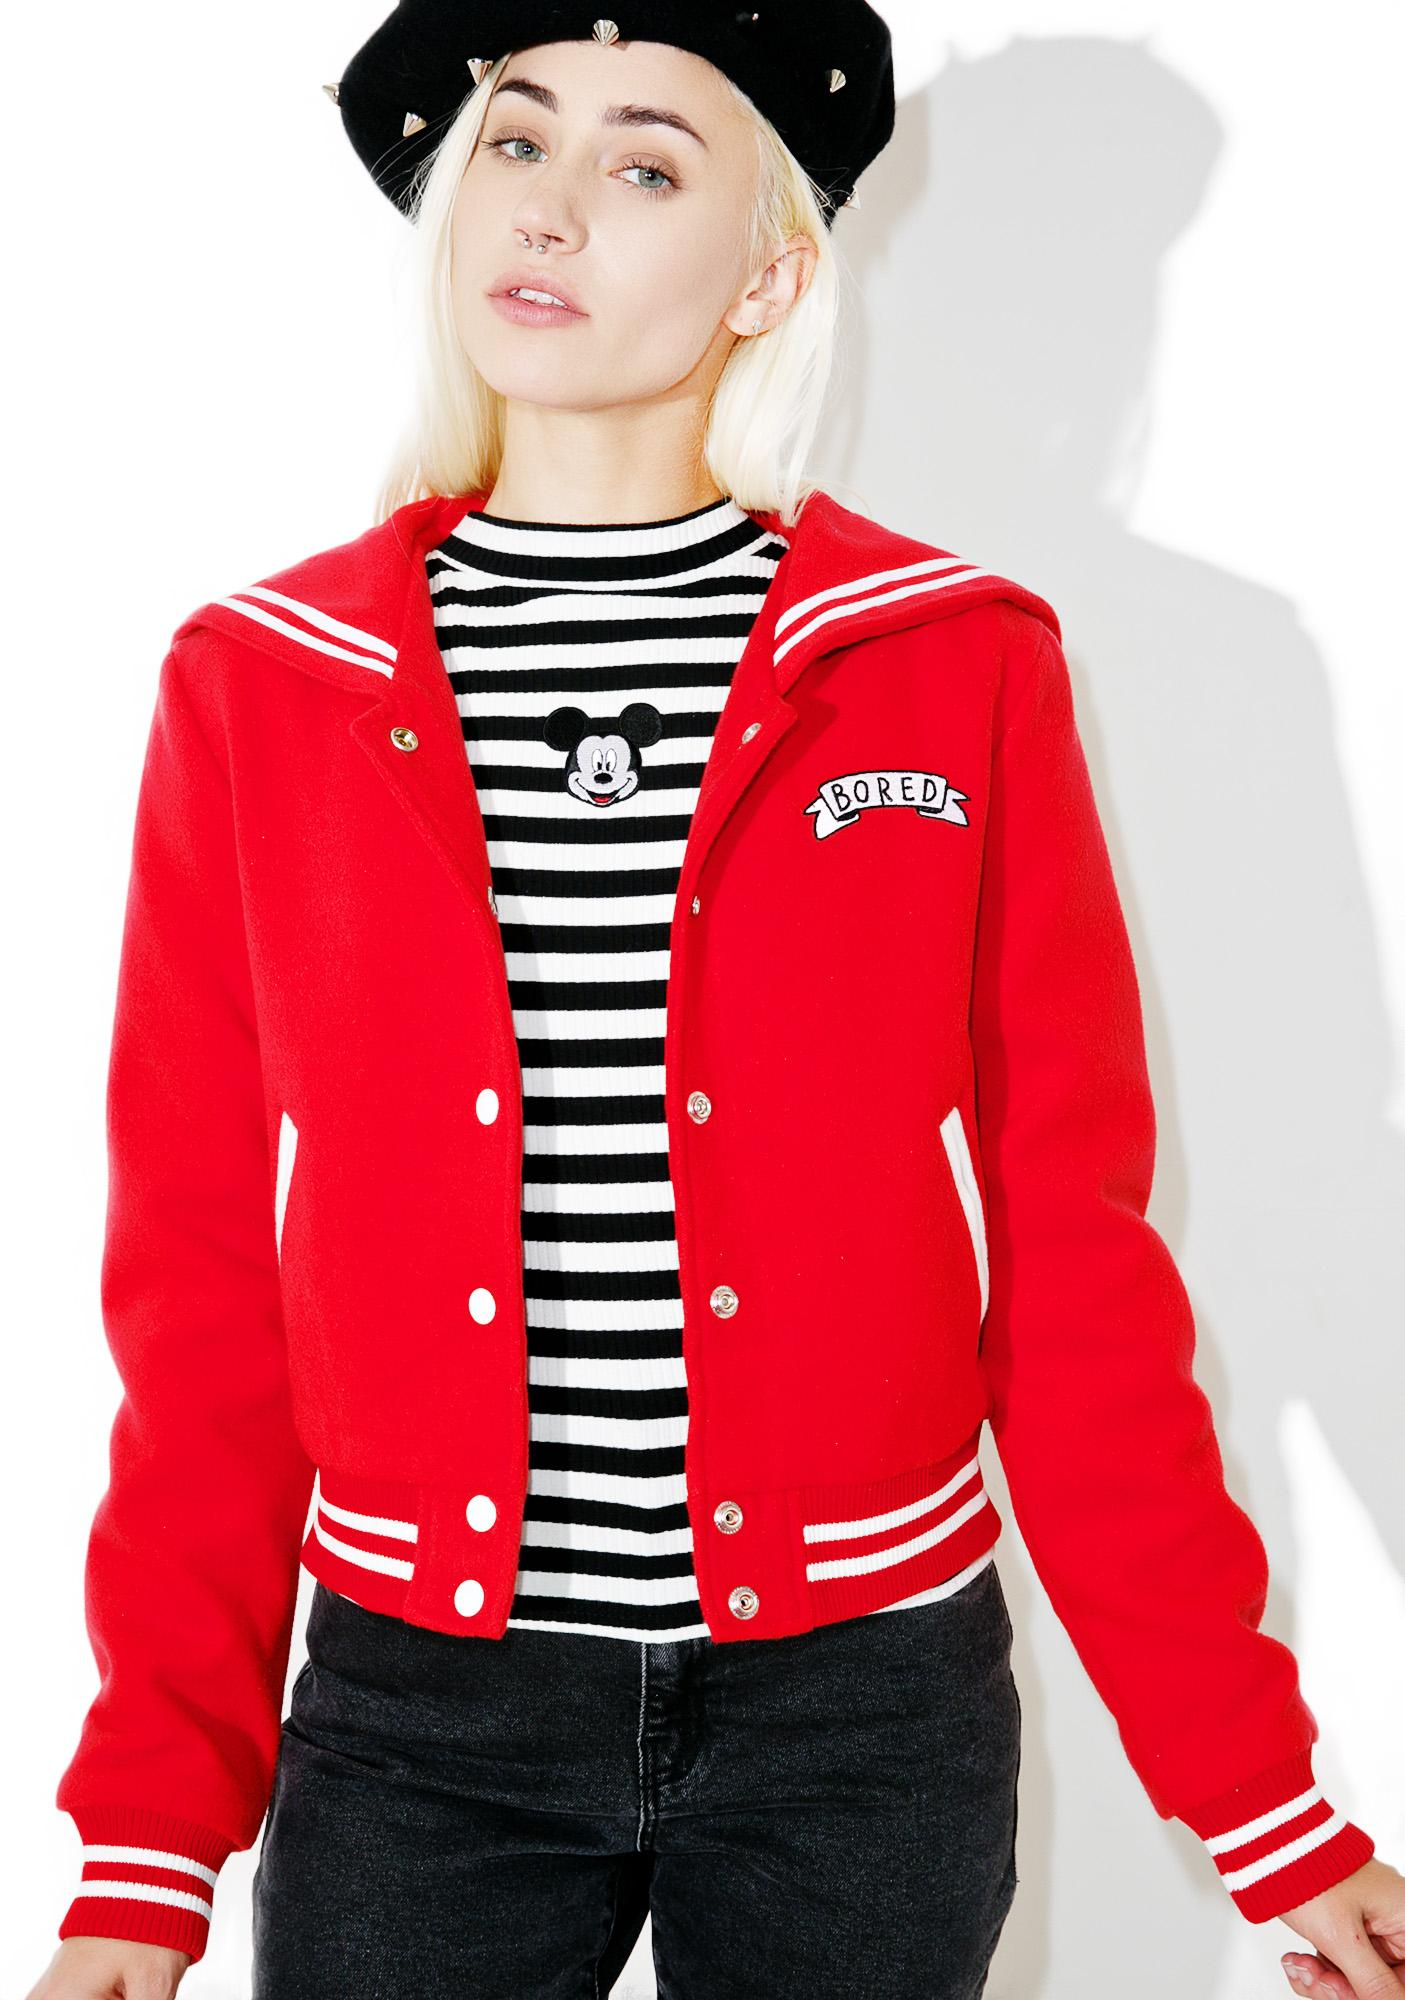 Lazy Oaf Bored Varsity Jacket